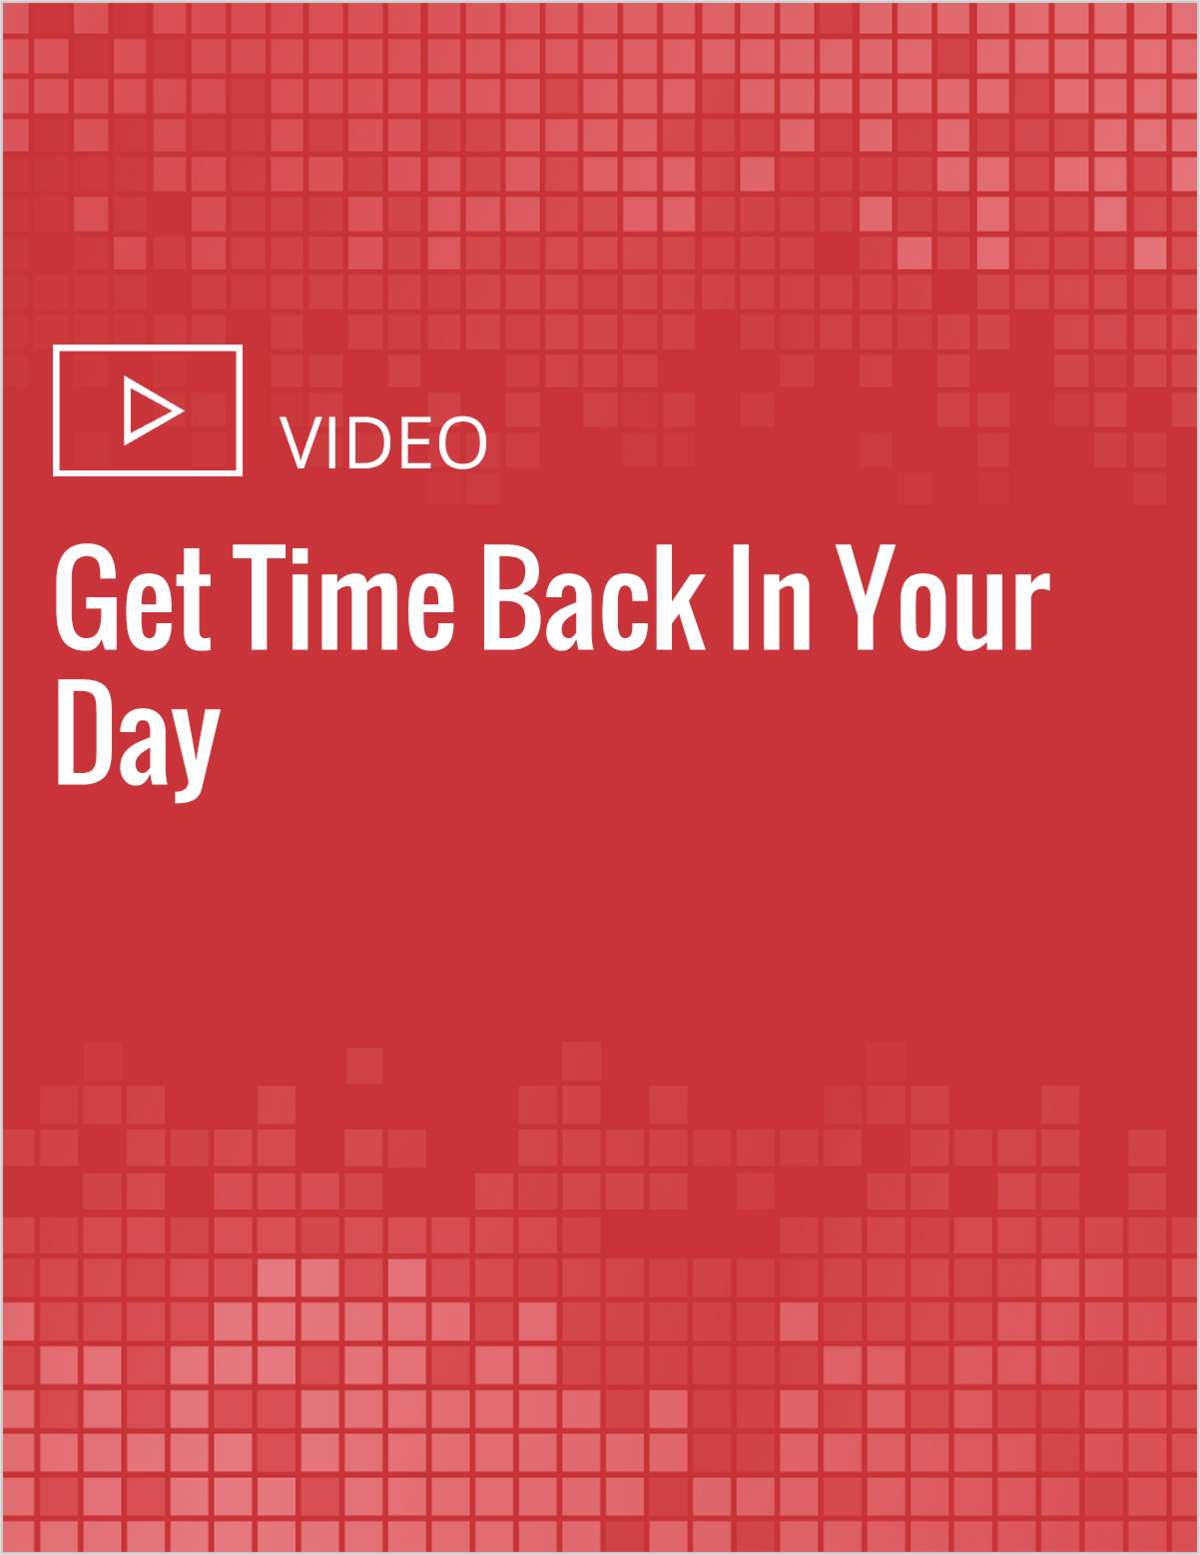 Get Time Back In Your Day